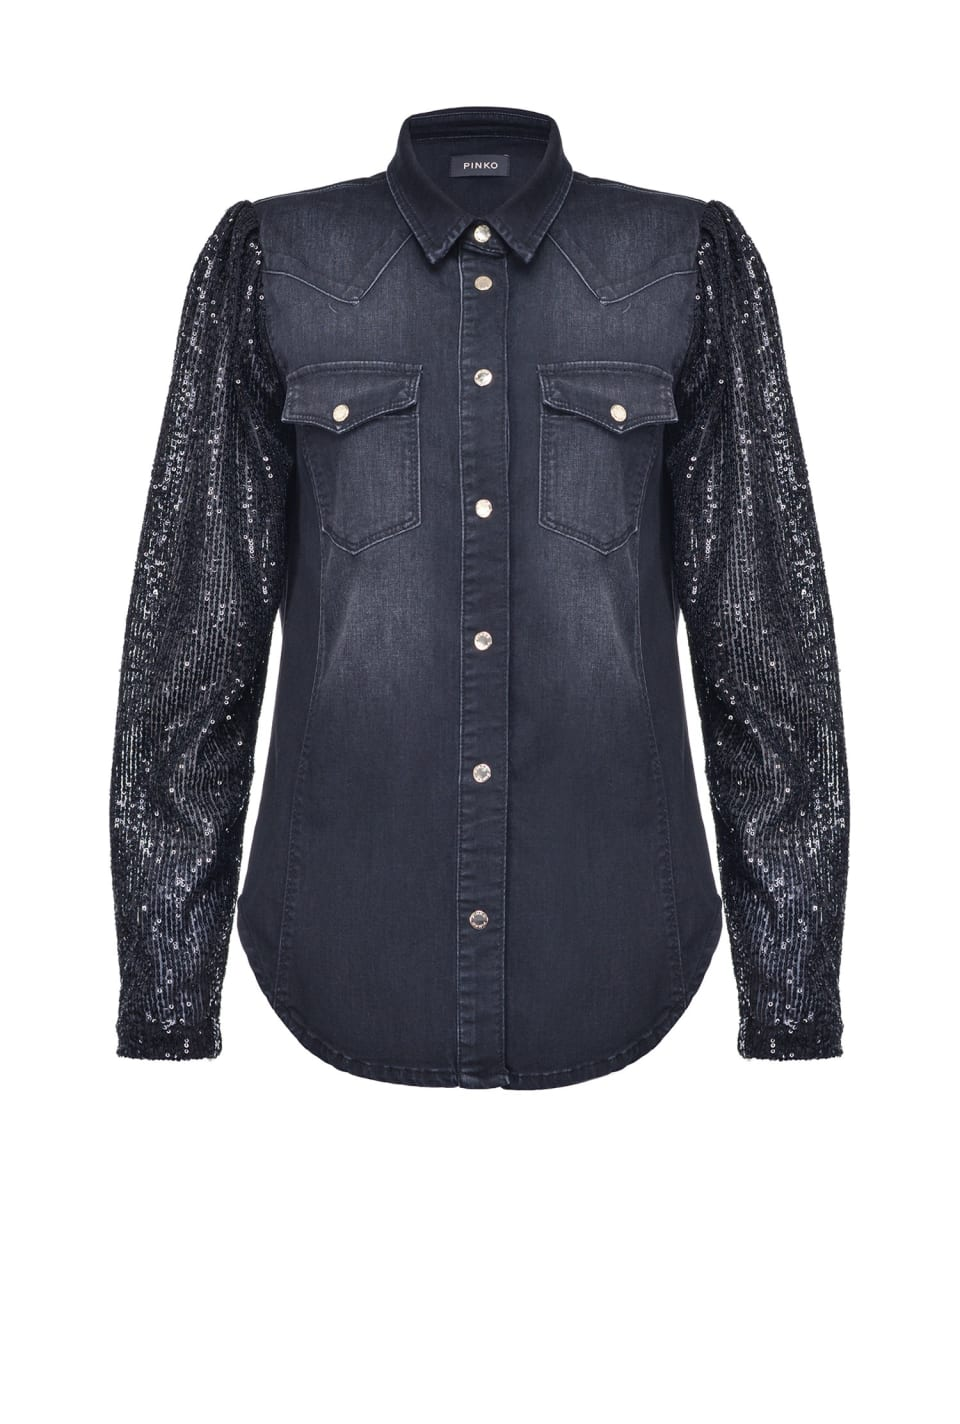 Camicia in denim con maniche in paillettes